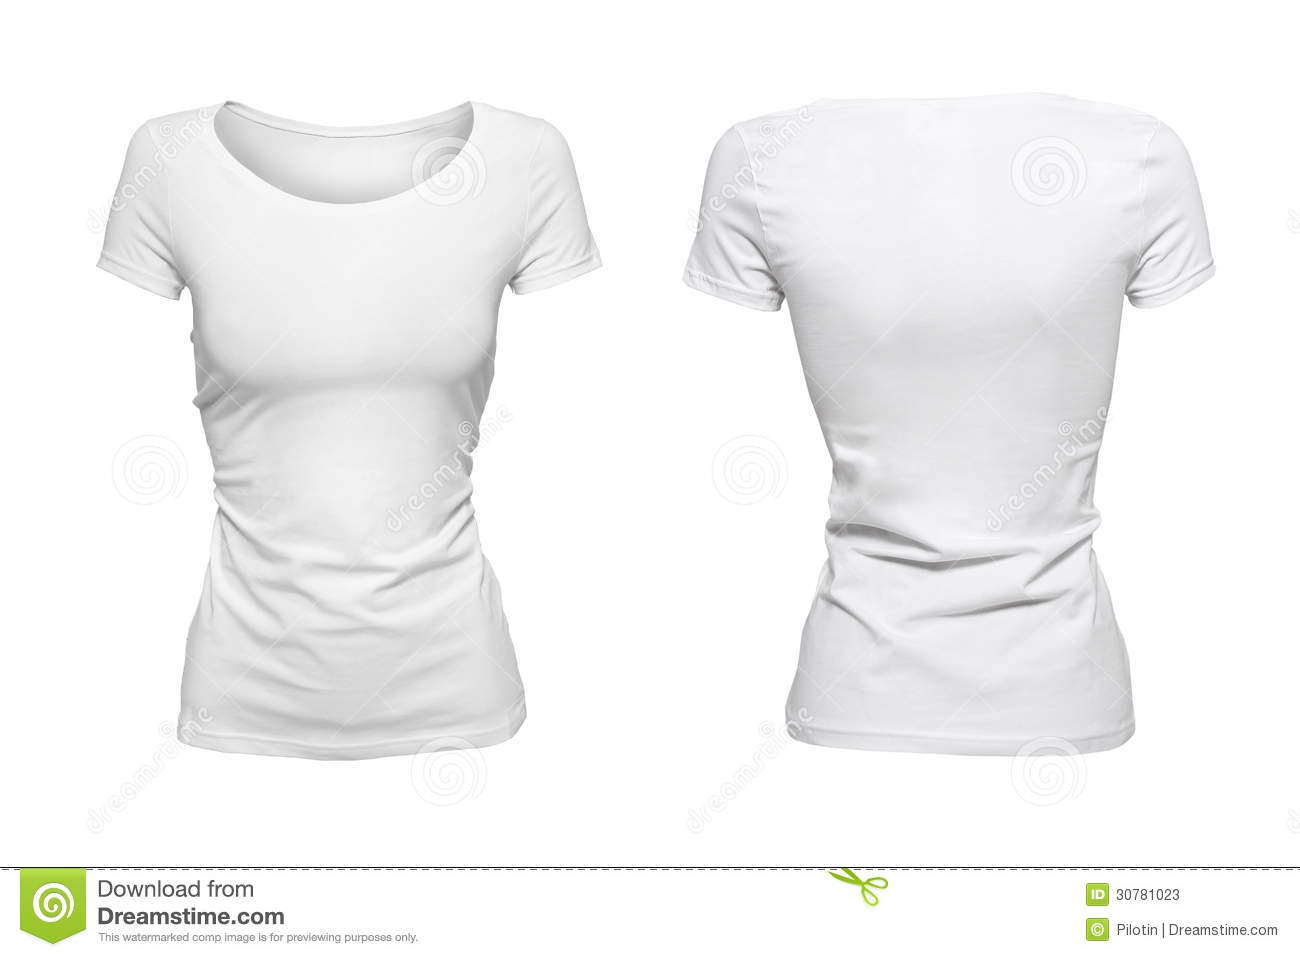 White shirt template back and front joy studio design for White t shirt template front and back